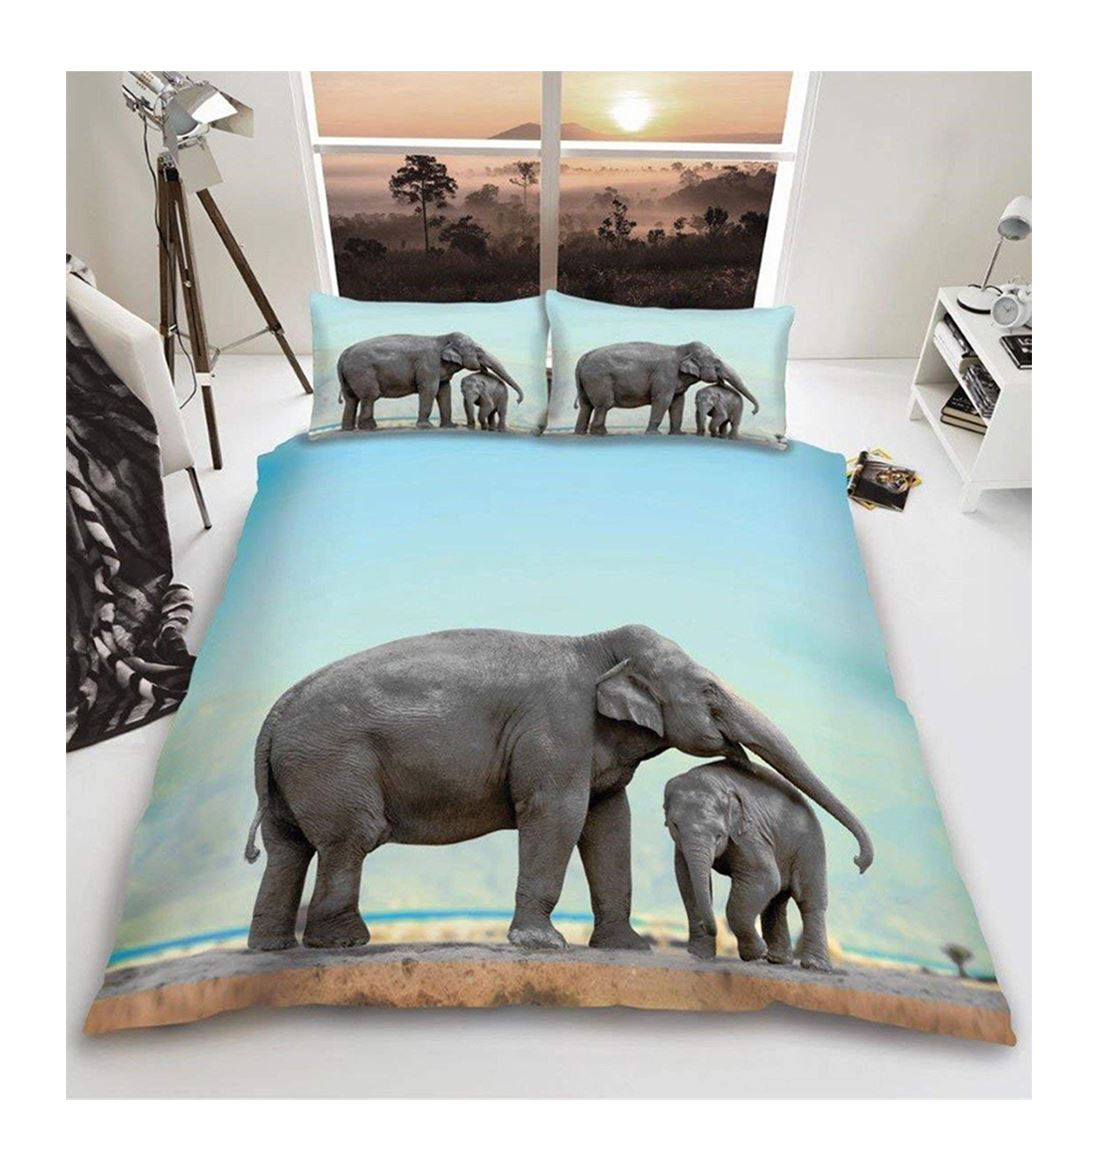 3D Elephant Printed Duvet Cover Bedding Set With Pillow Cases Double/King